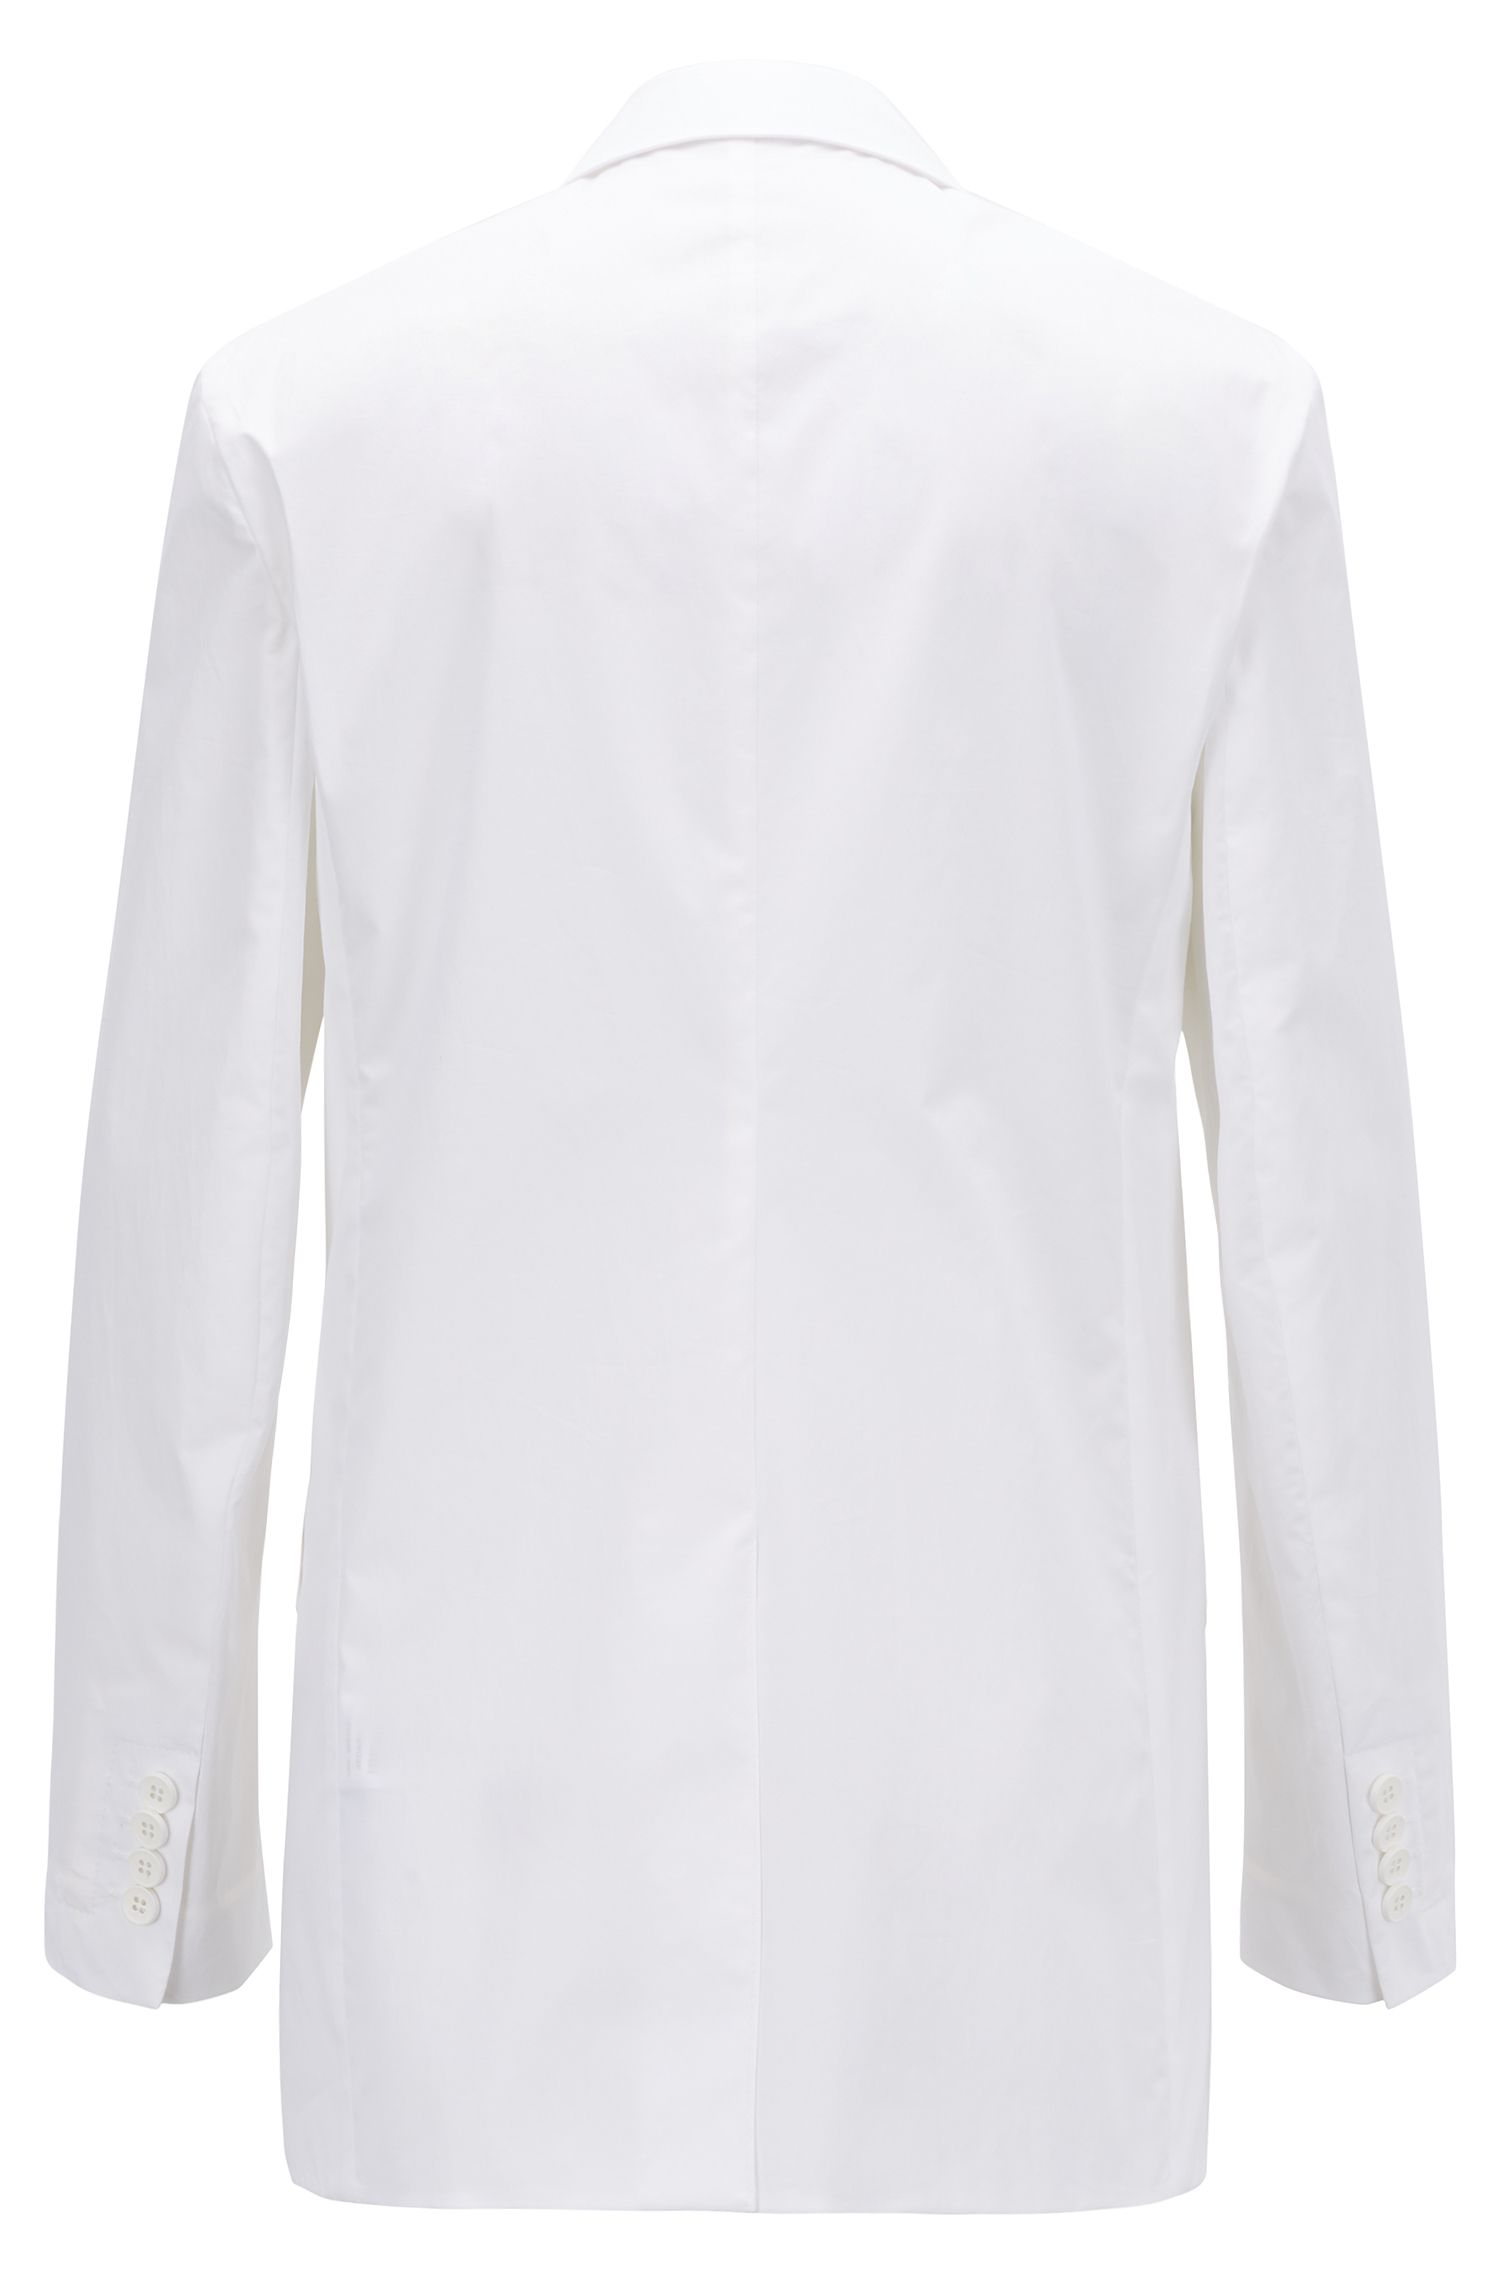 Relaxed-fit jacket in Portuguese paper-touch stretch cotton, White